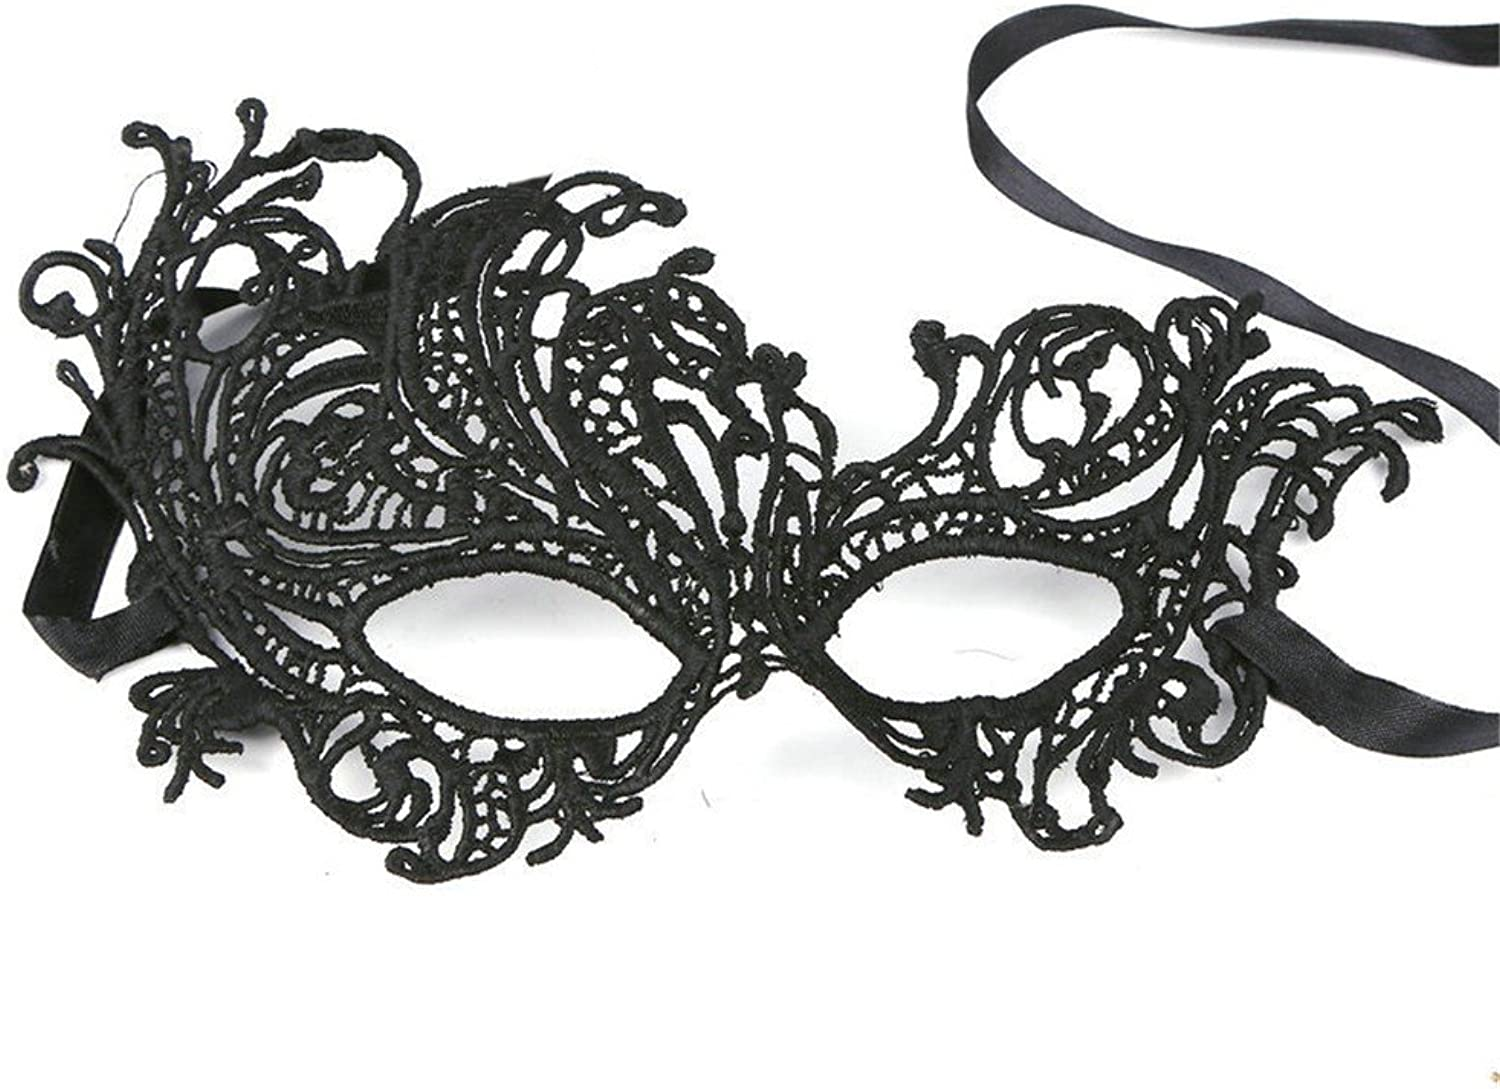 Mardi Gras Party Masquerade Mask,Halloween Fancy Dress Dance Party Party Dress up mask Sexy Queen Cosplay Half face oneEyed Openwork lace mask DT19 Prom Masks